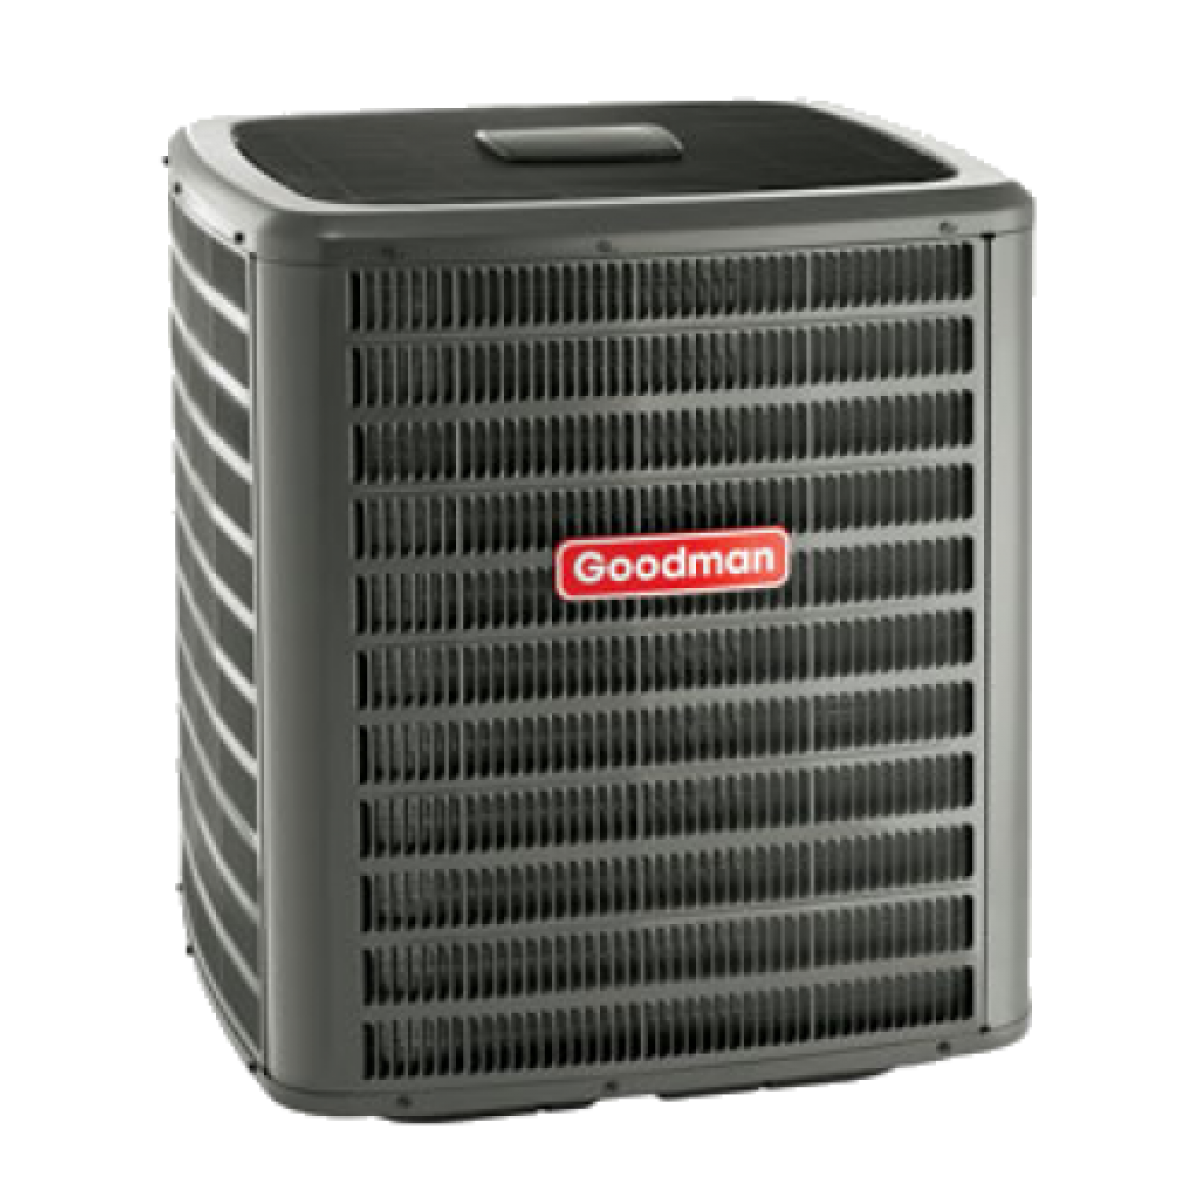 Goodman 1 5 Ton 14 Seer Heat Pump Split System In 1 5 Ton